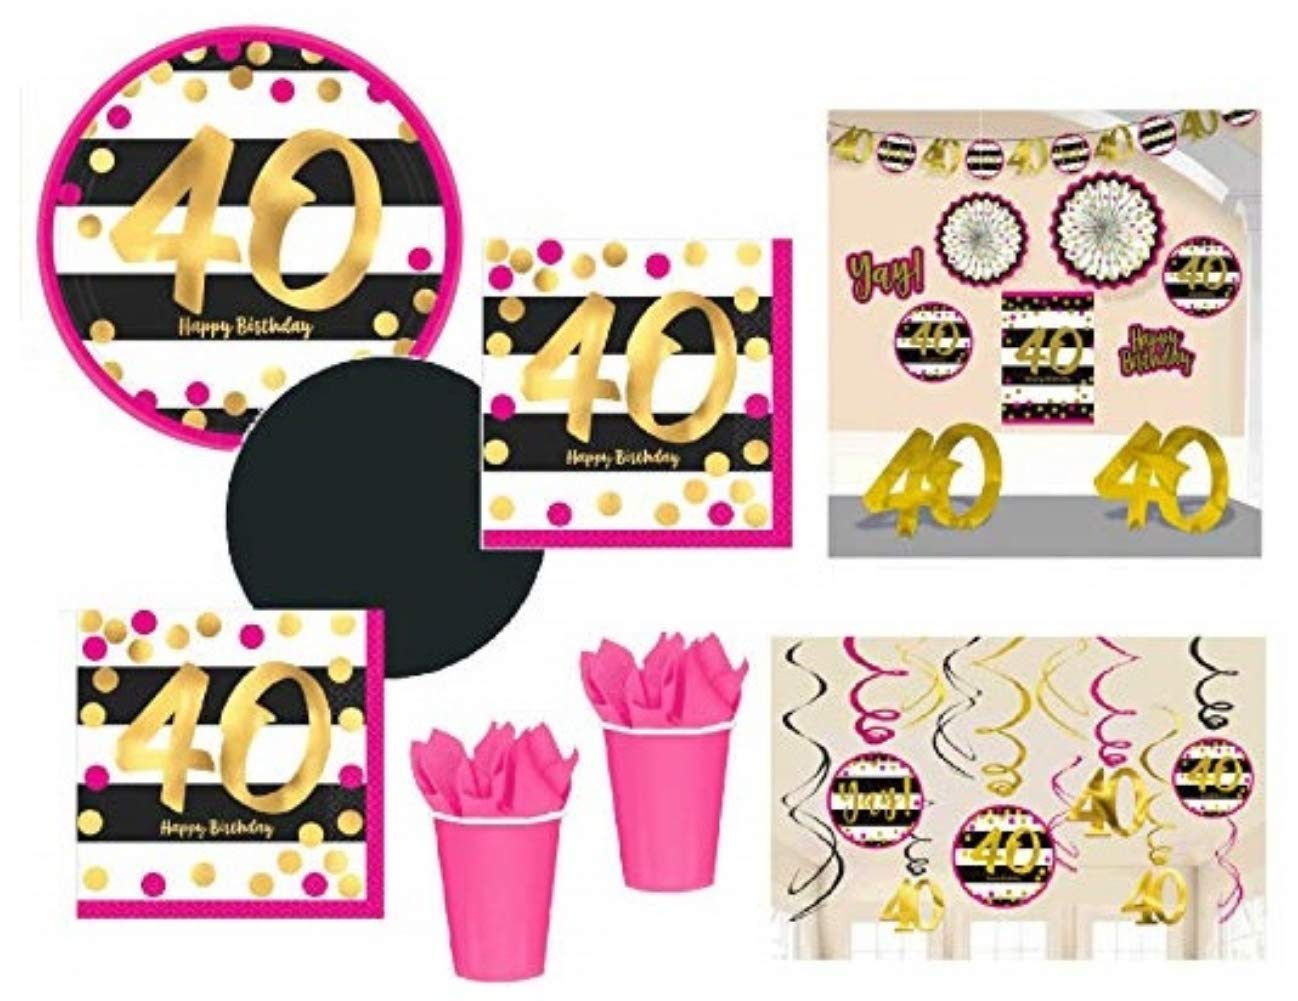 hight resolution of fakkos design 40th birthday decorations and party supplies in pink gold black foil for 24 guests includes plates cups napkins deluxe decorations kit